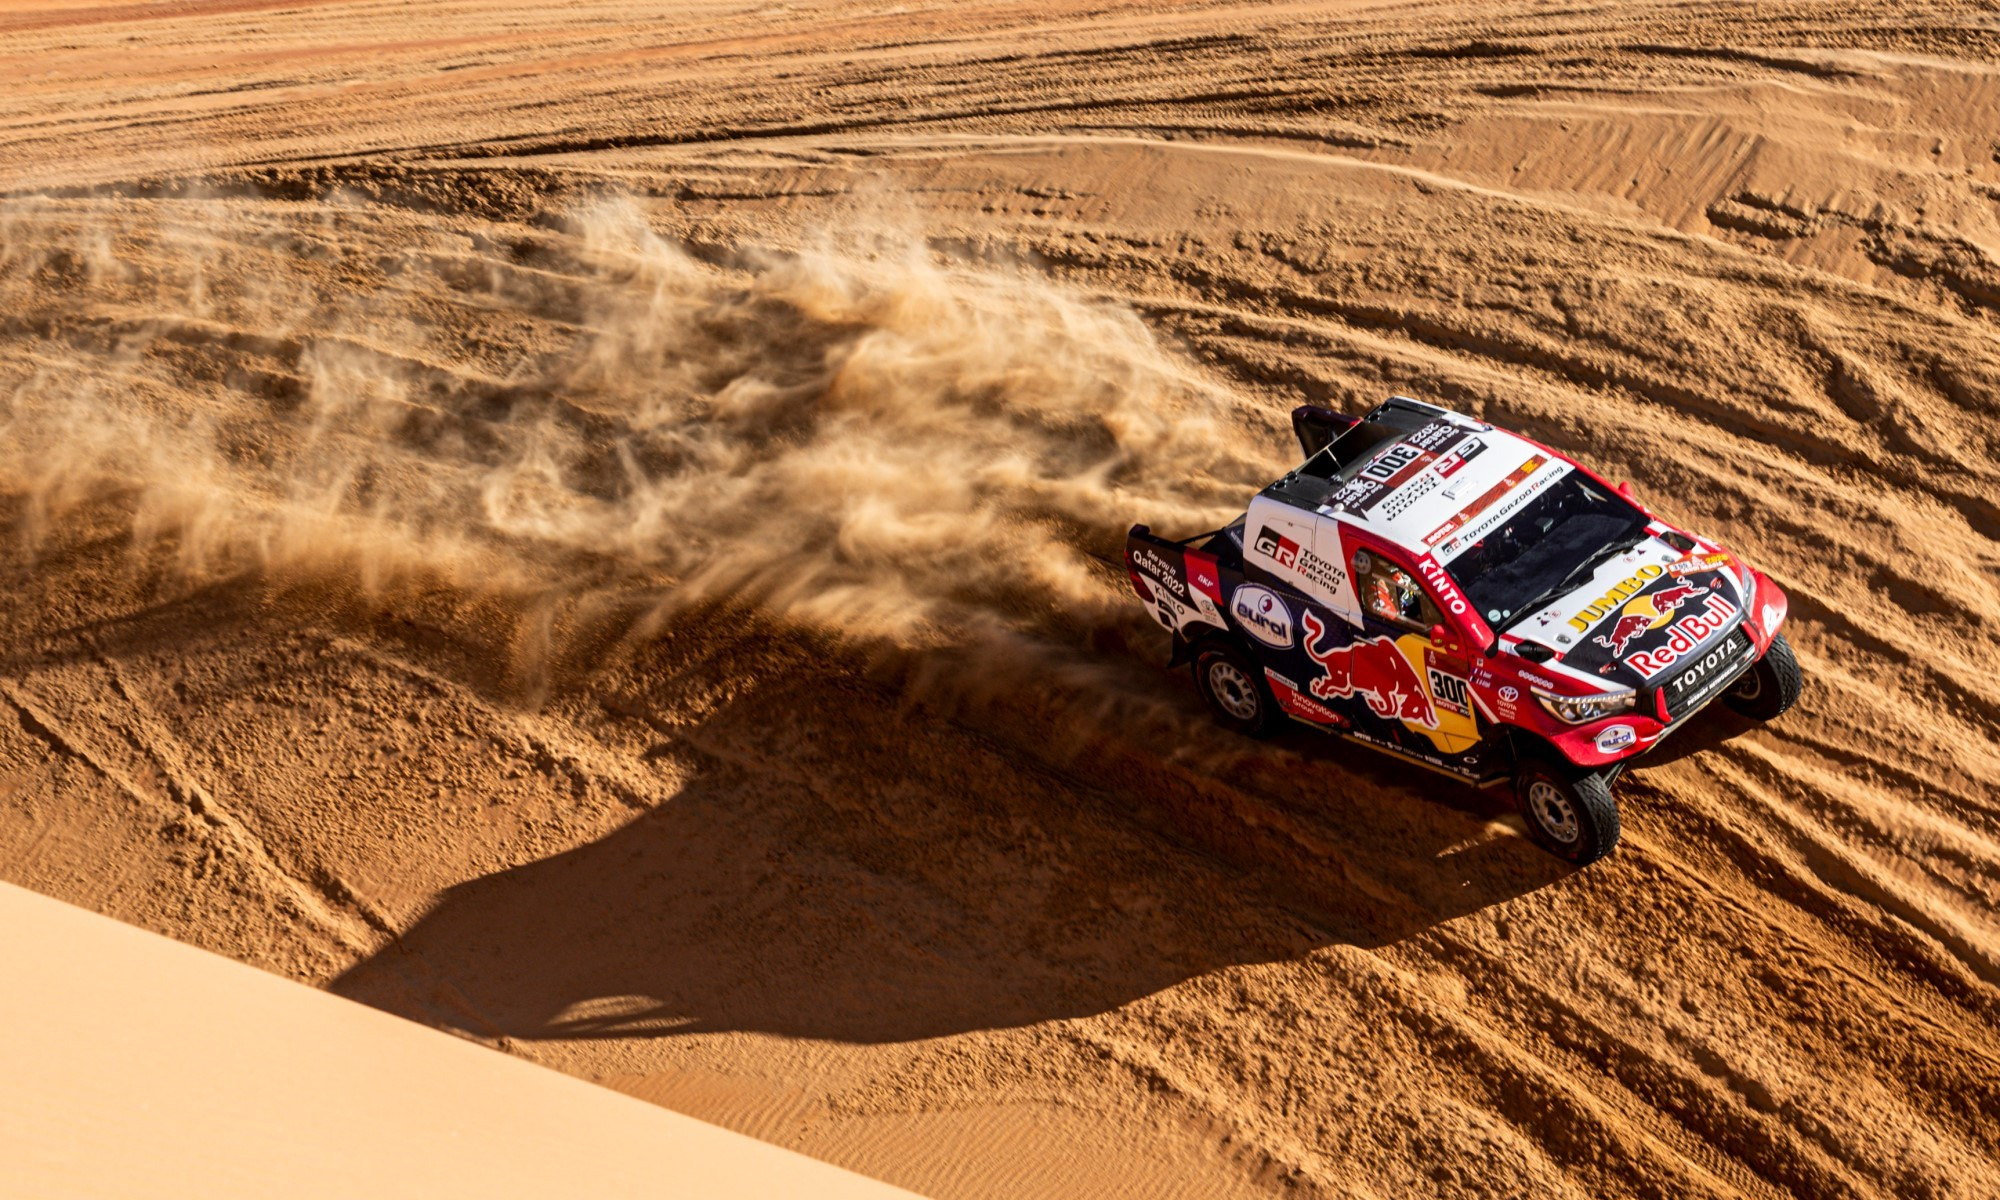 Nasser Al-Attiyah finished 10 seconds behind the winner on 2020 Dakar stage 11